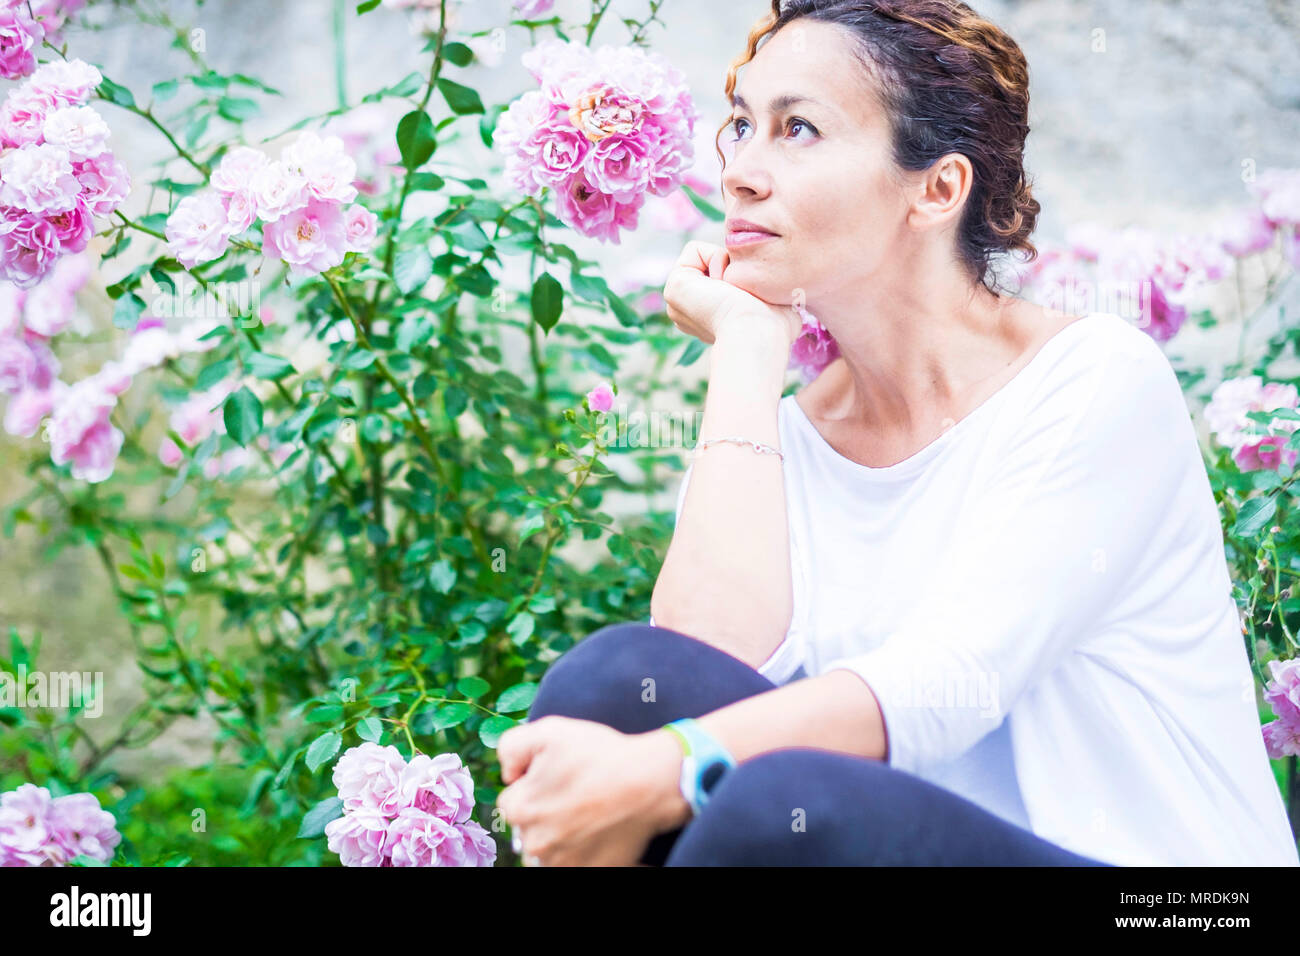 Beautiful wooman 40 years old look at her side thinking happy. Roses flower background. Nature outdoor colors. - Stock Image